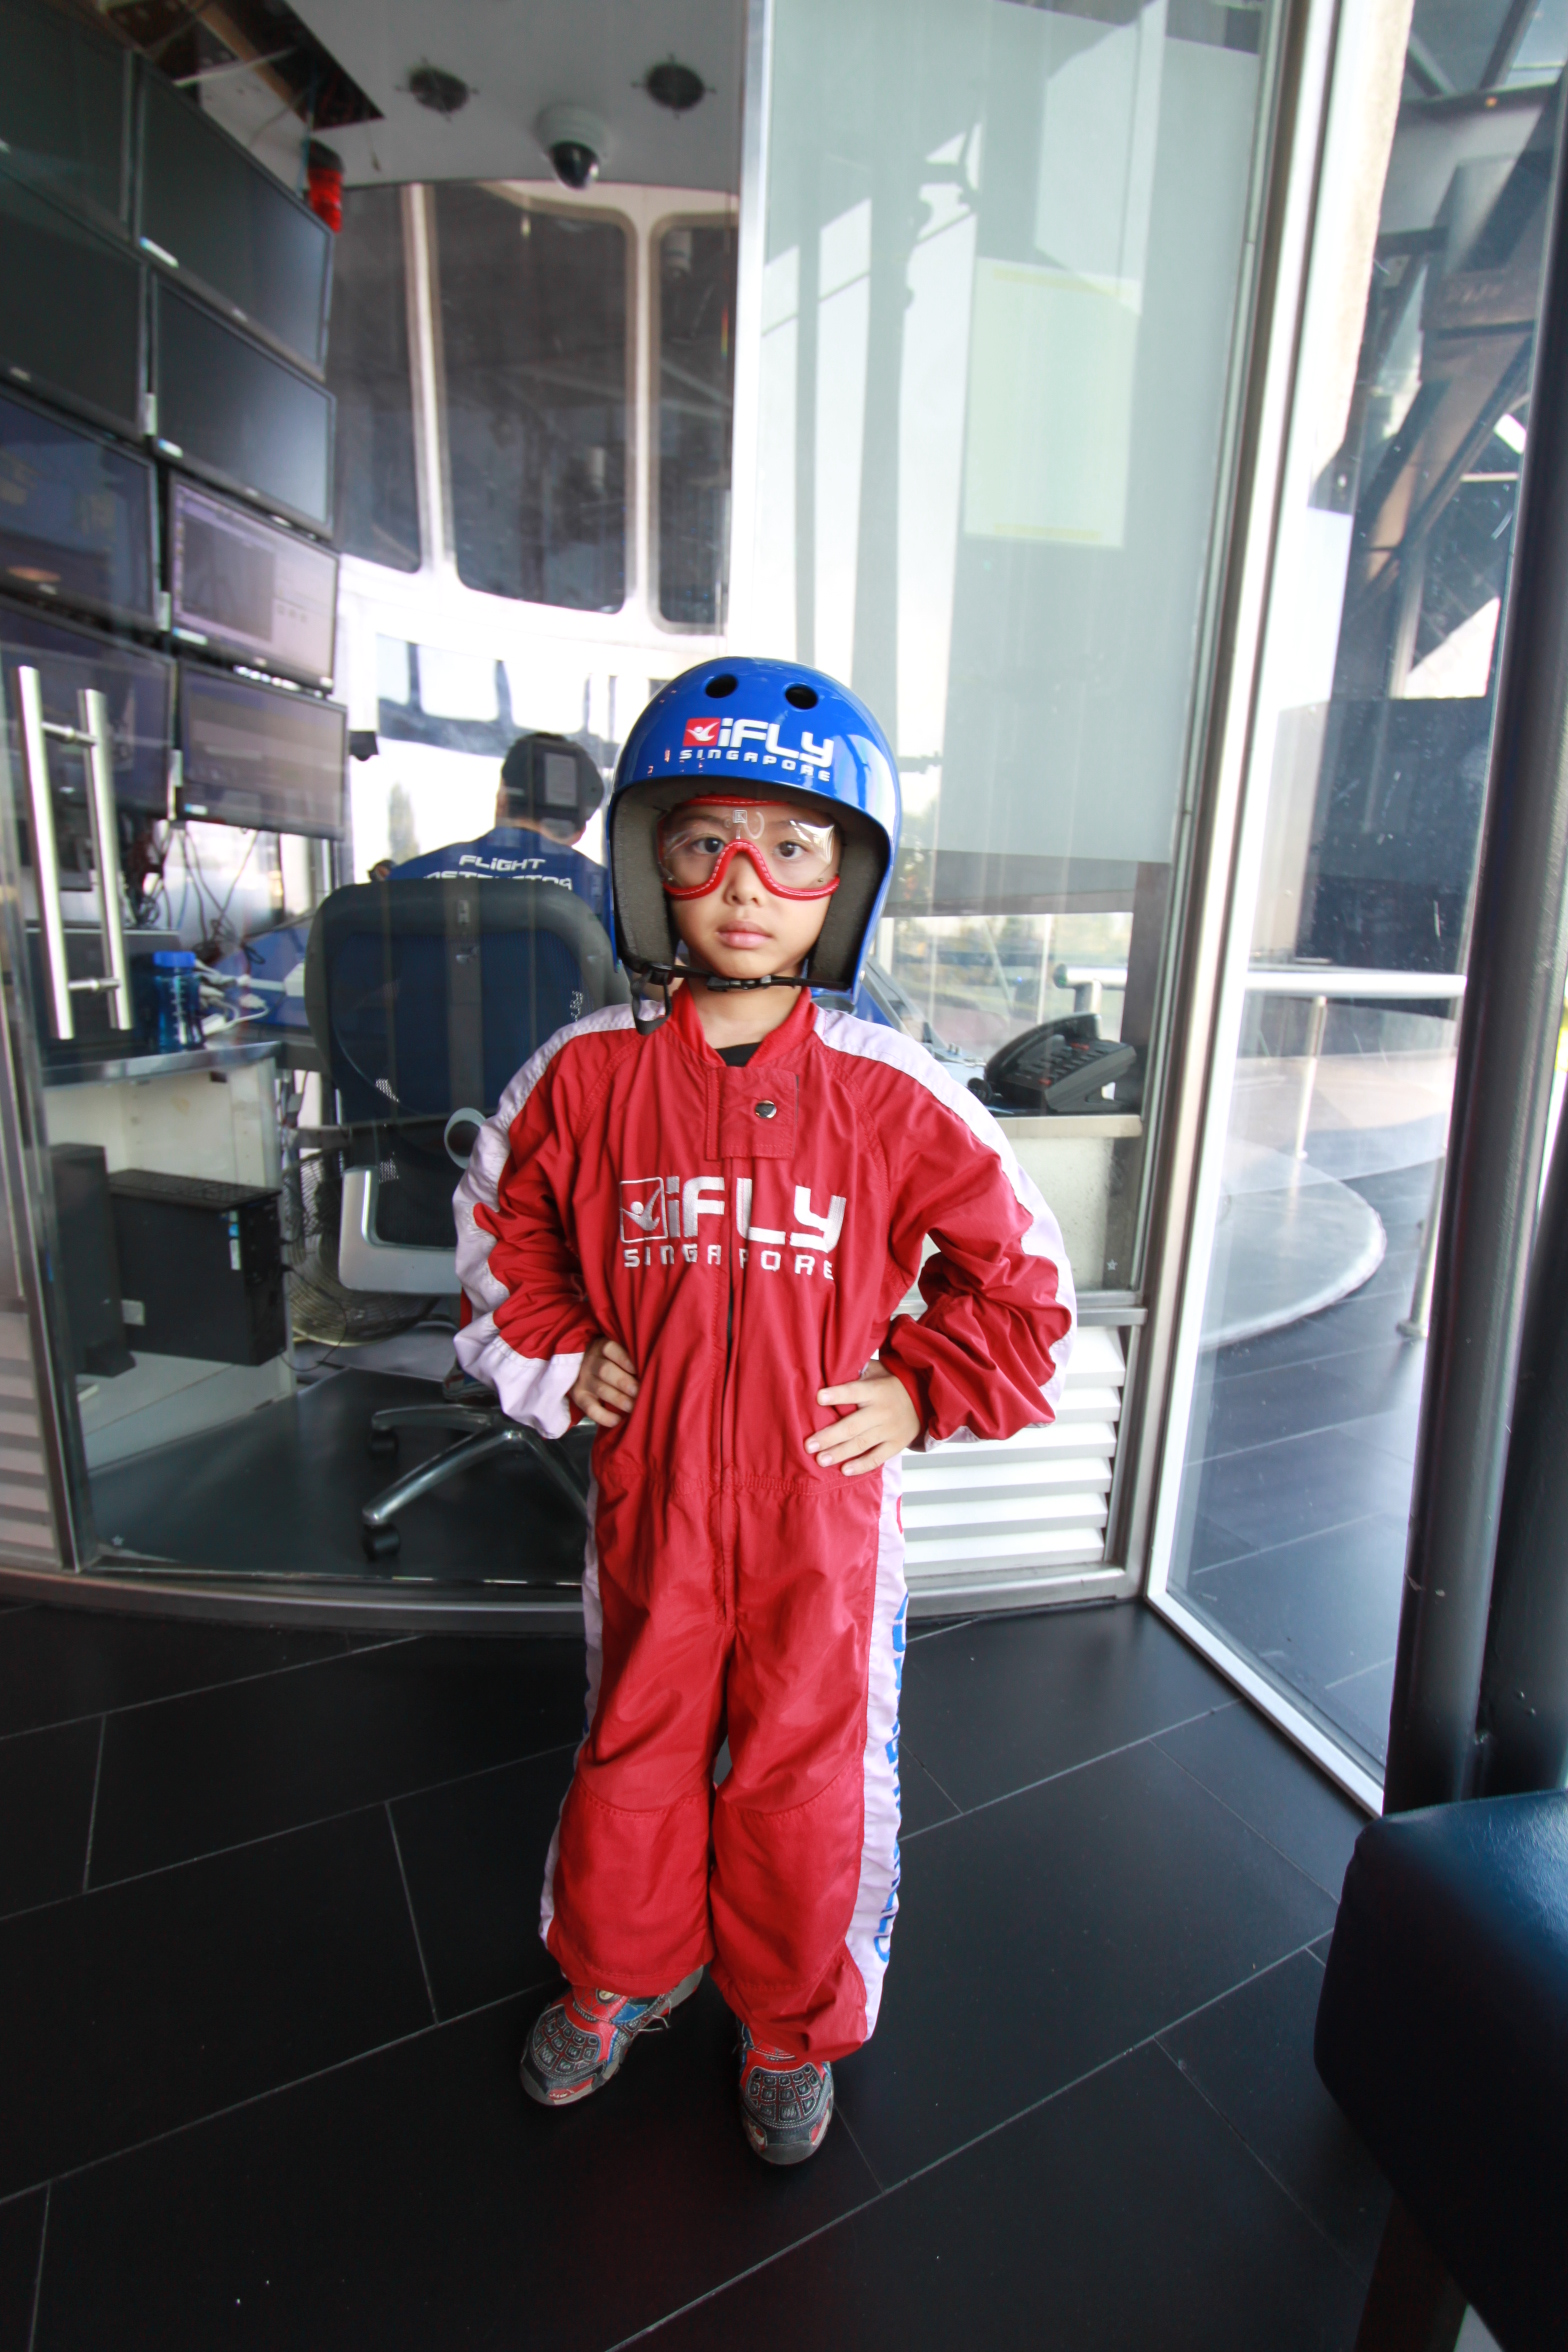 Ifly Singapore To A 7 Year Old Probably His Best And Most Wow Adult Img 6716